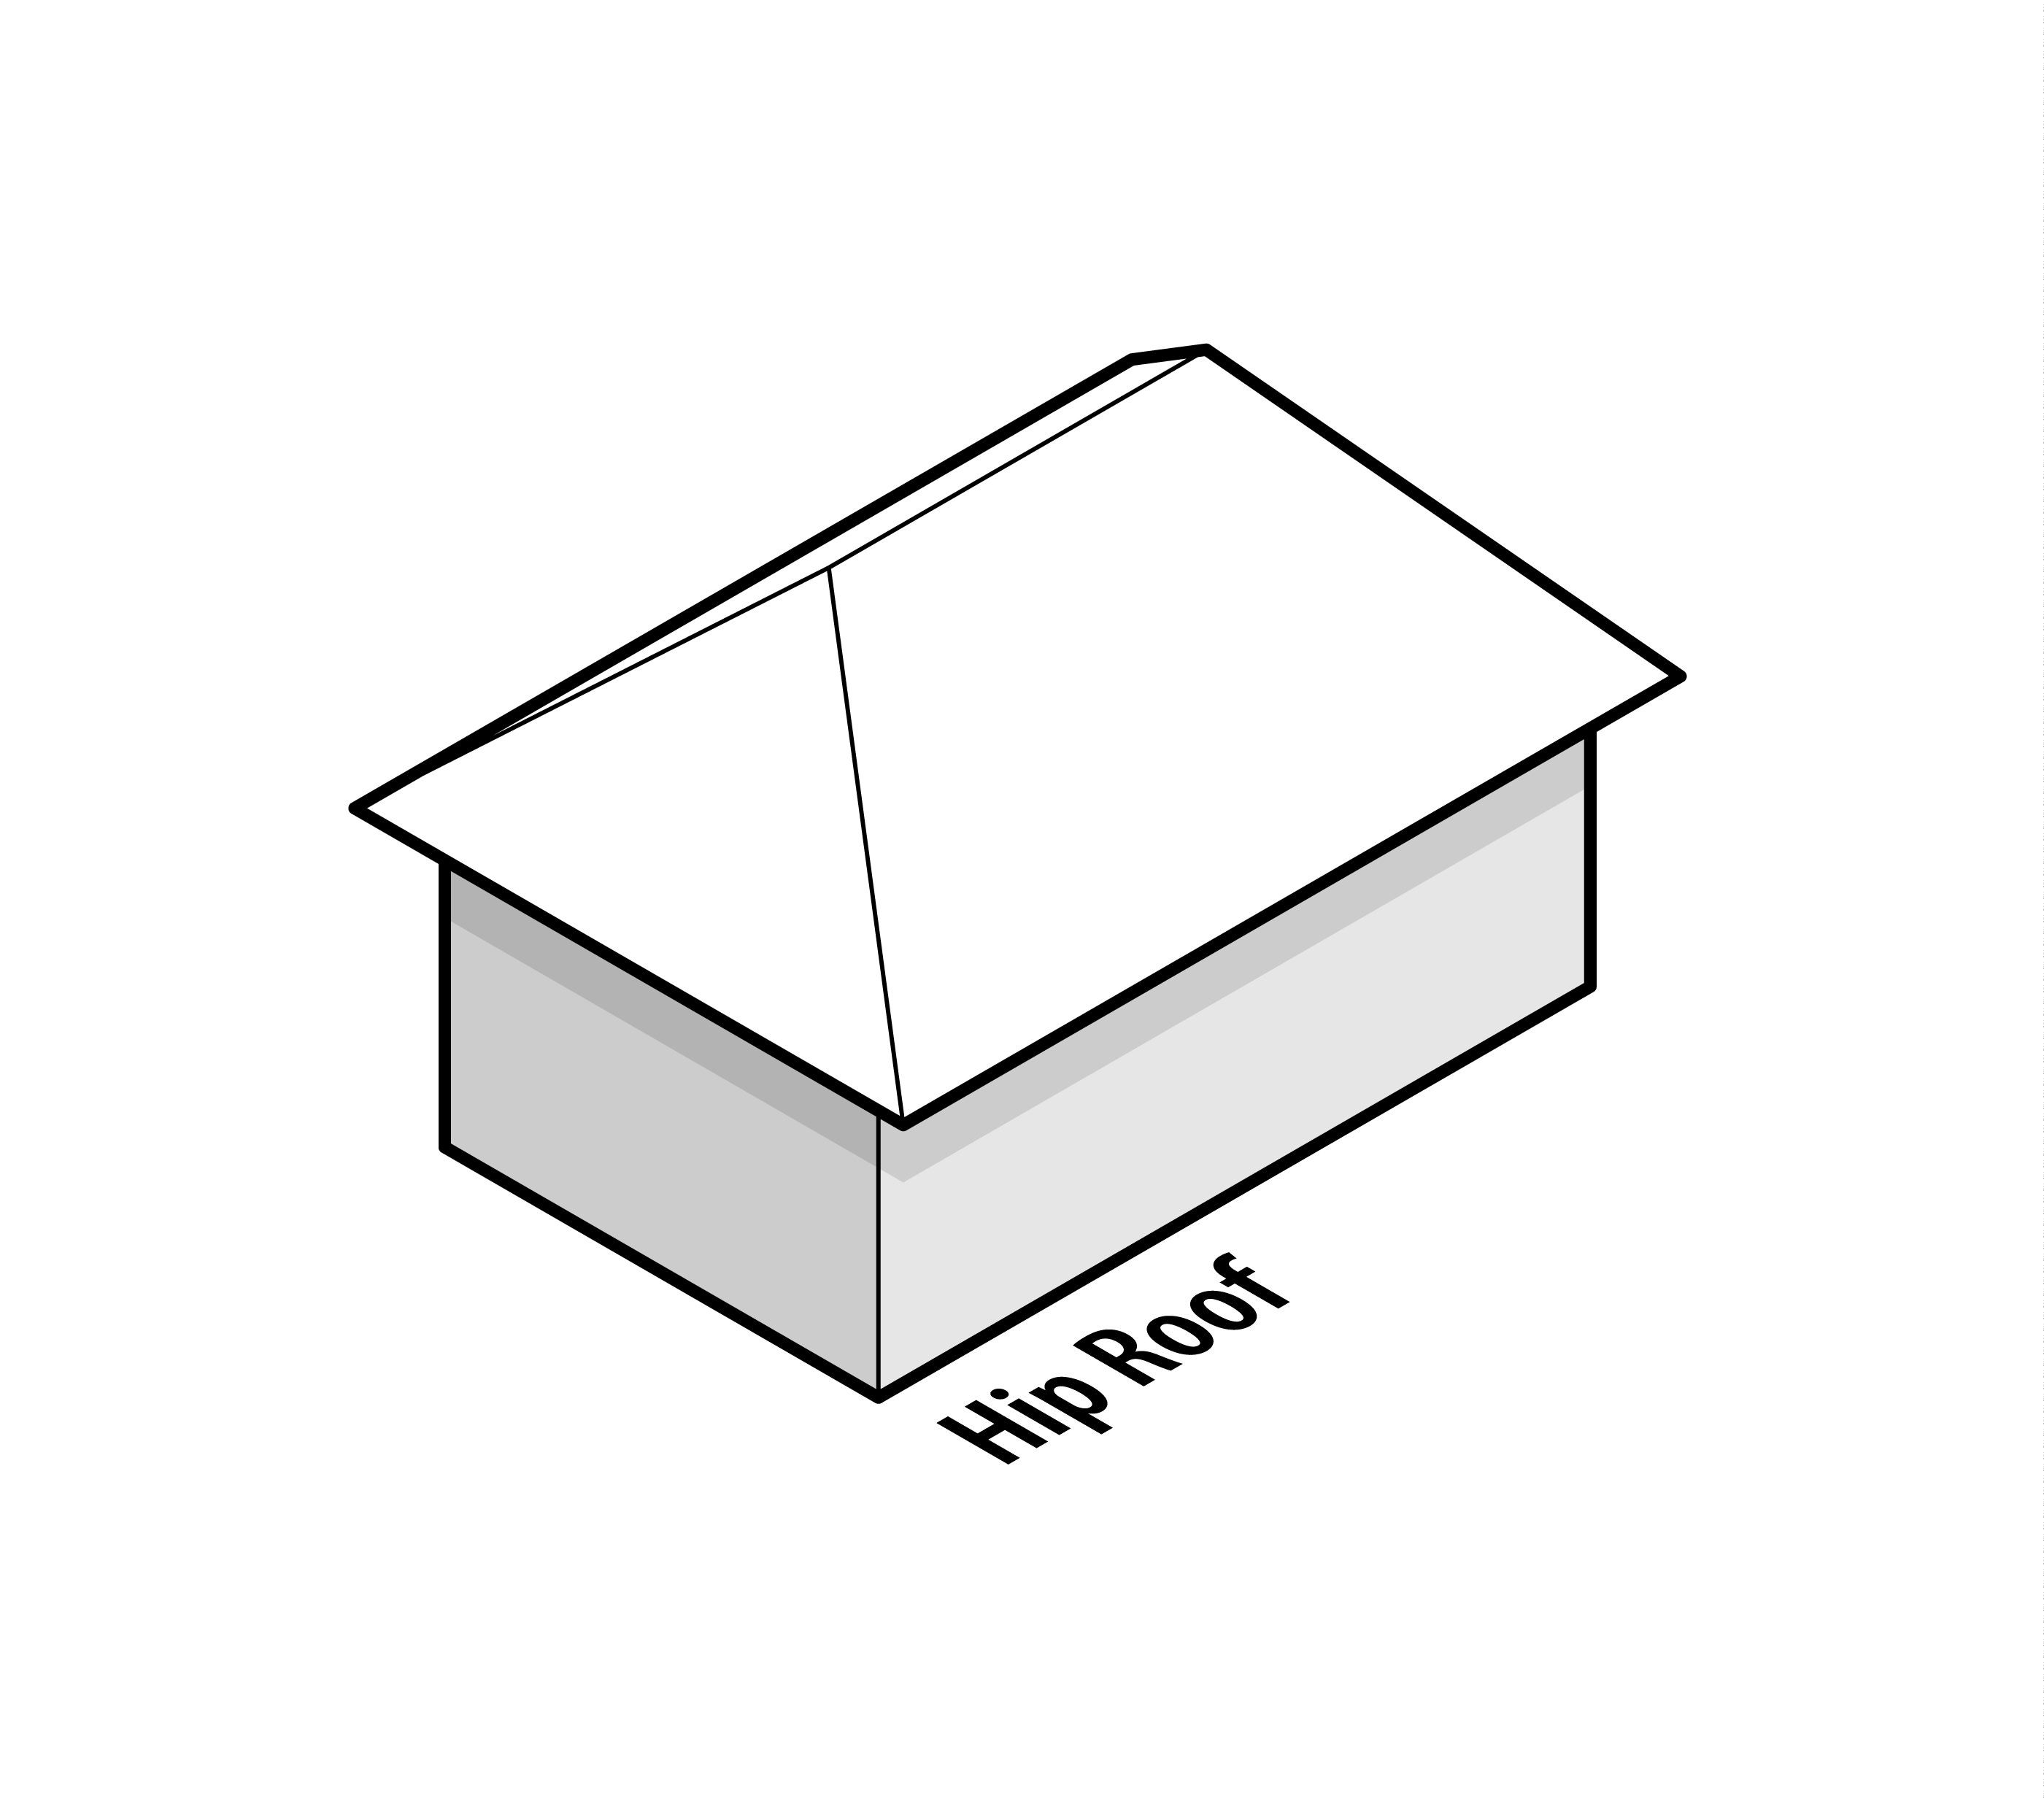 36 Types Of Roofs Styles For Houses Illustrated Roof Design Examples Roof Design Hip Roof Hip Roof Design